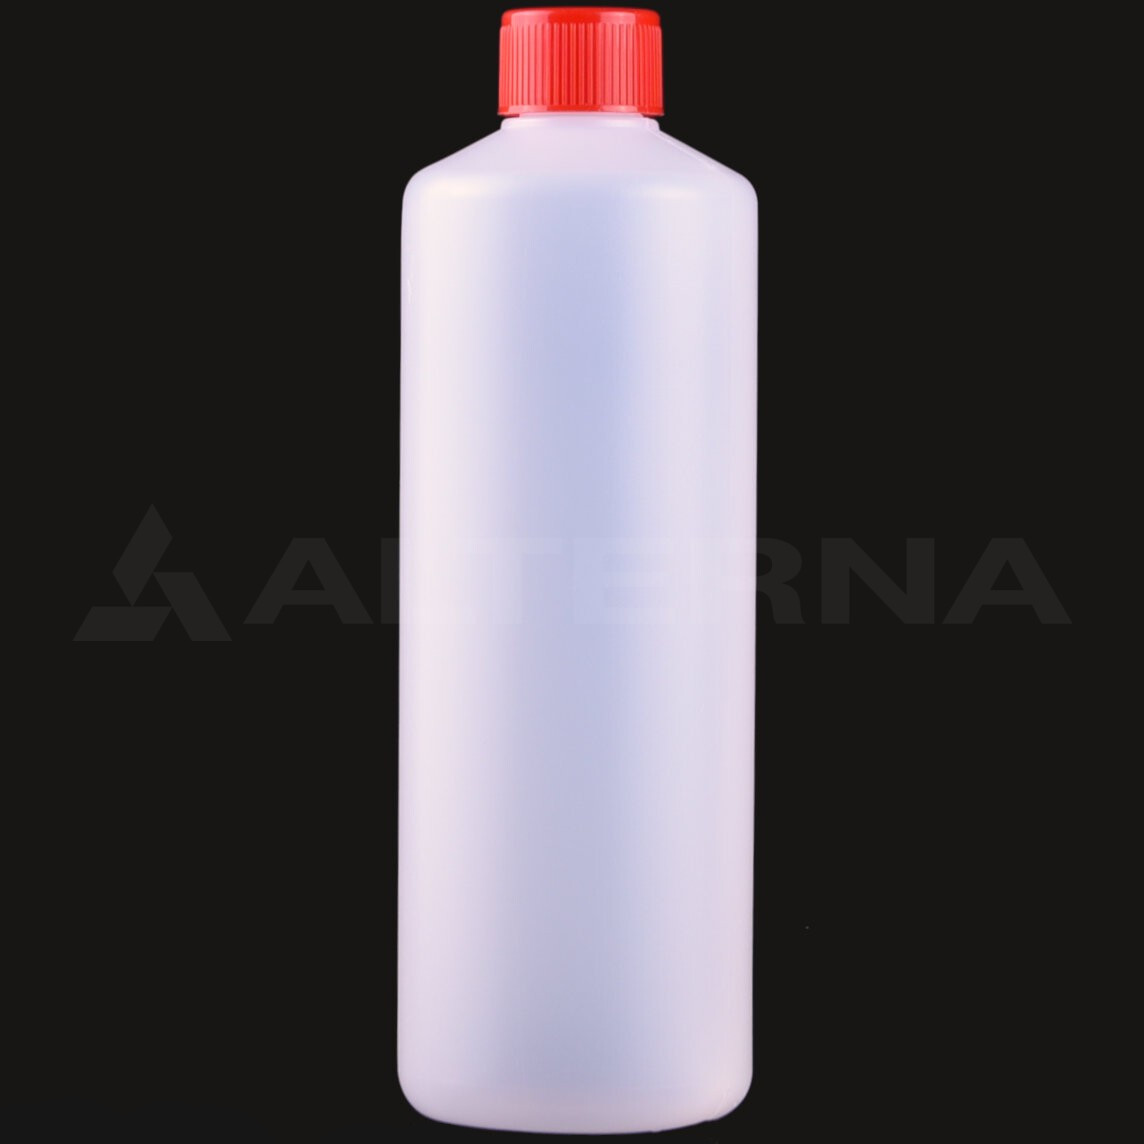 750 ml HDPE Bottle with 28 mm Child-proof Cap